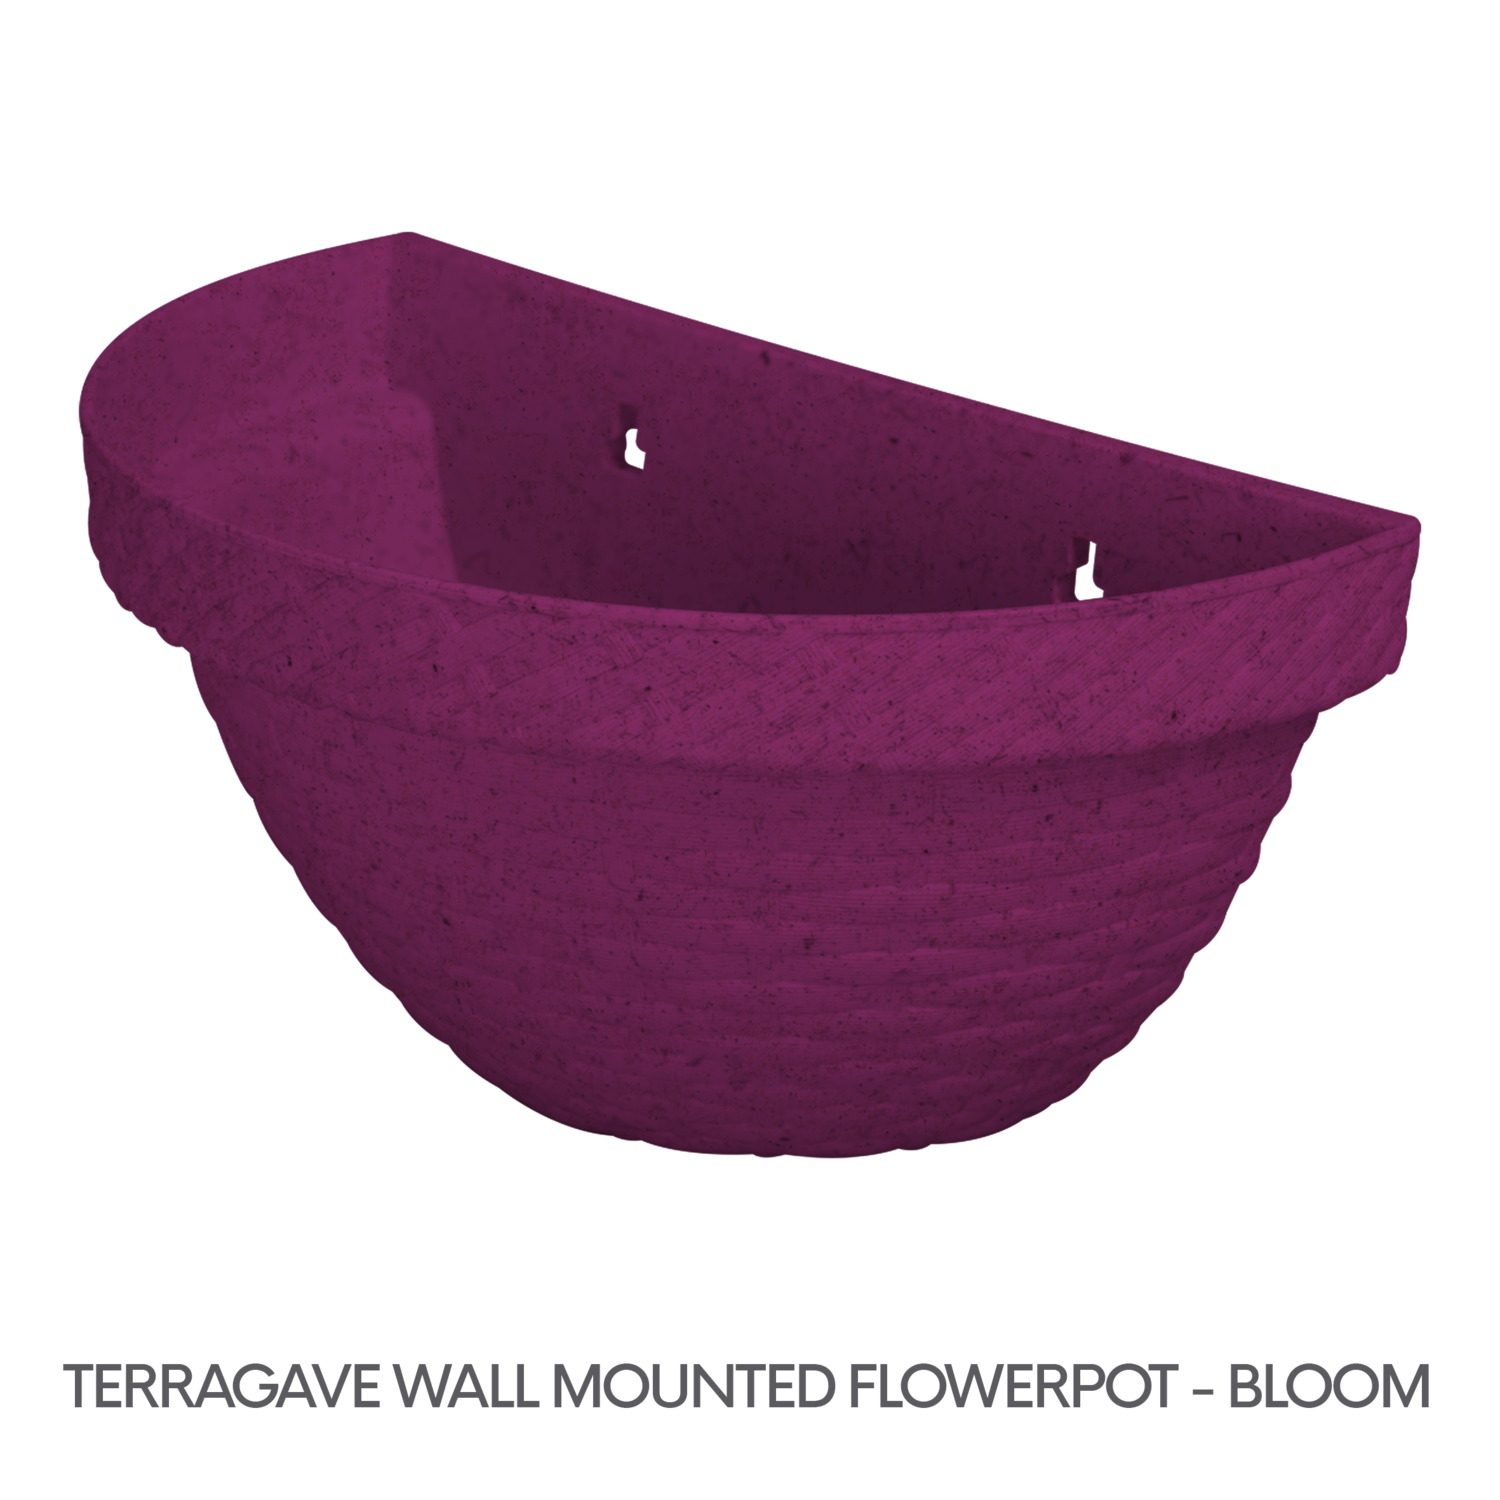 1 TERRAGAVE WALL MOUNTED FLOWERPOT - BLOOM.png